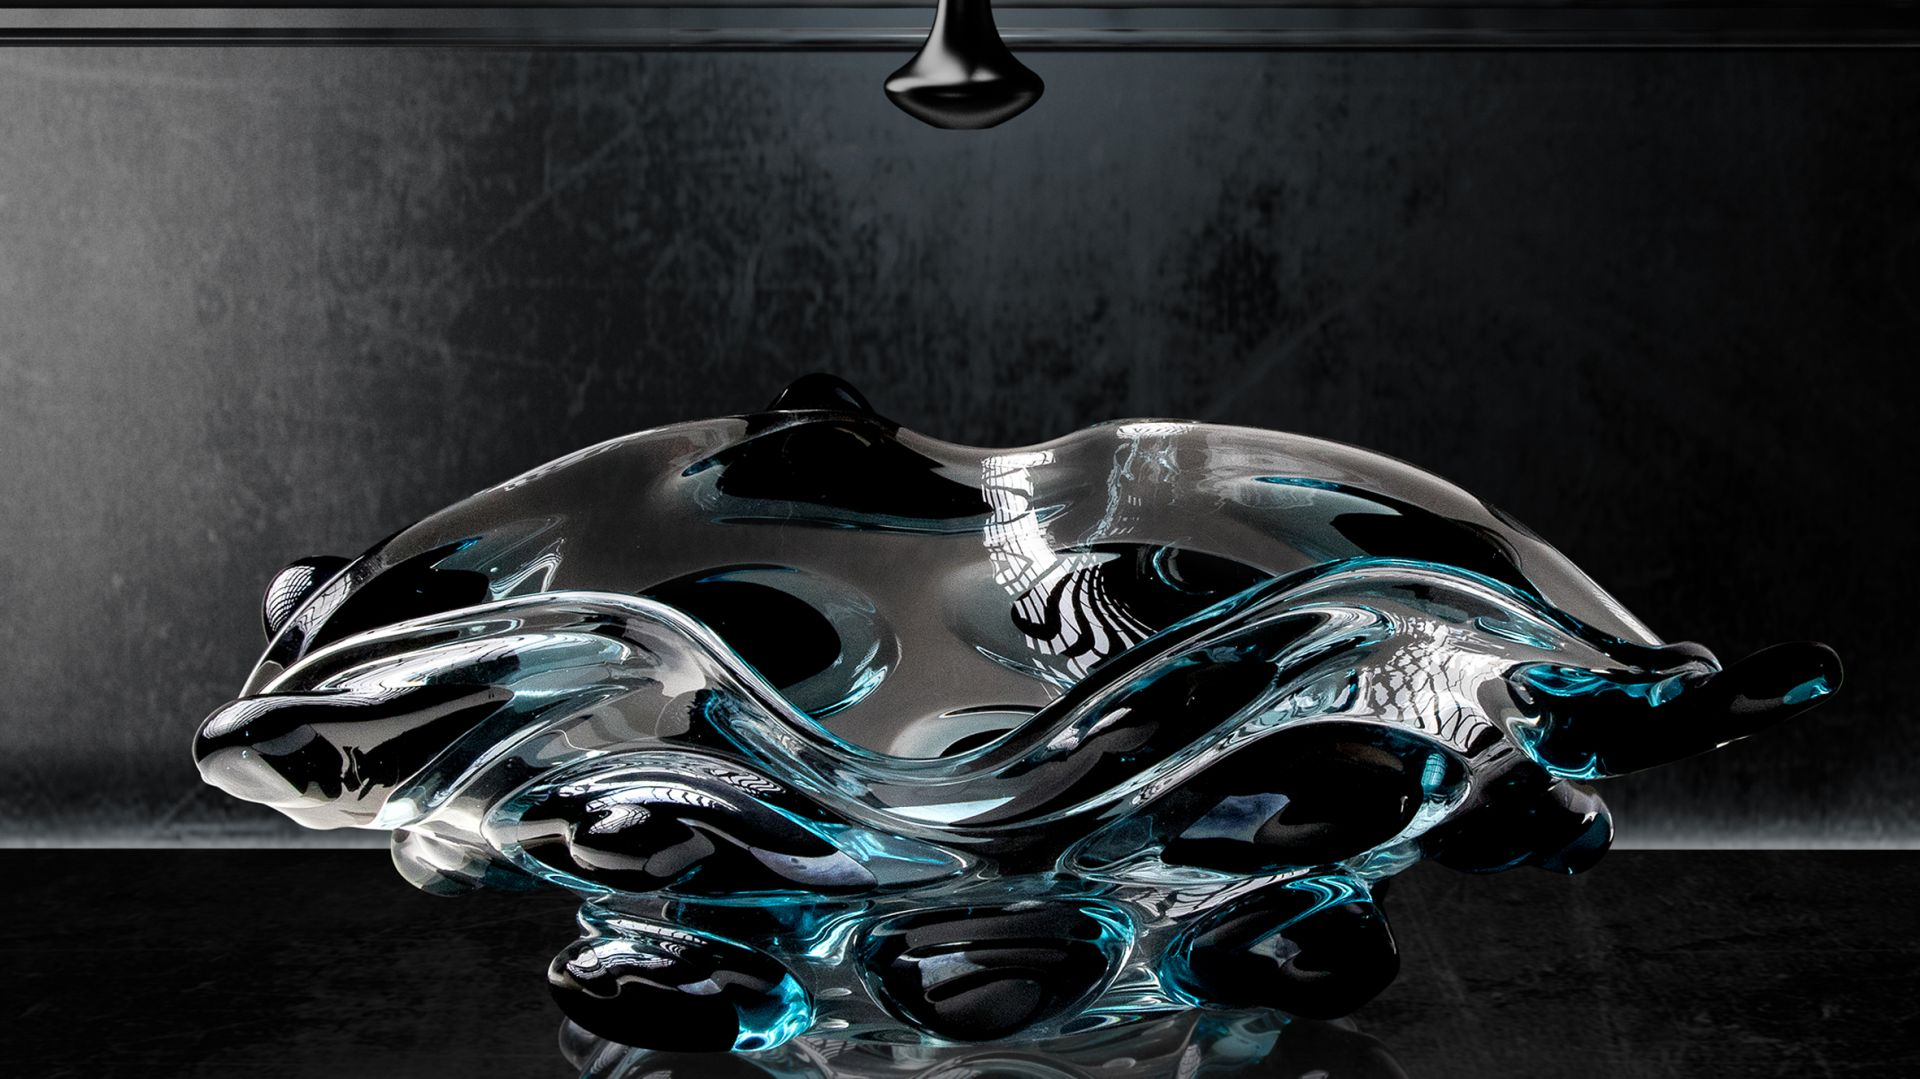 Szklana umywalka Arte 4 z kolekcji Arte Collection marki Glass Design. Fot. Glass Design